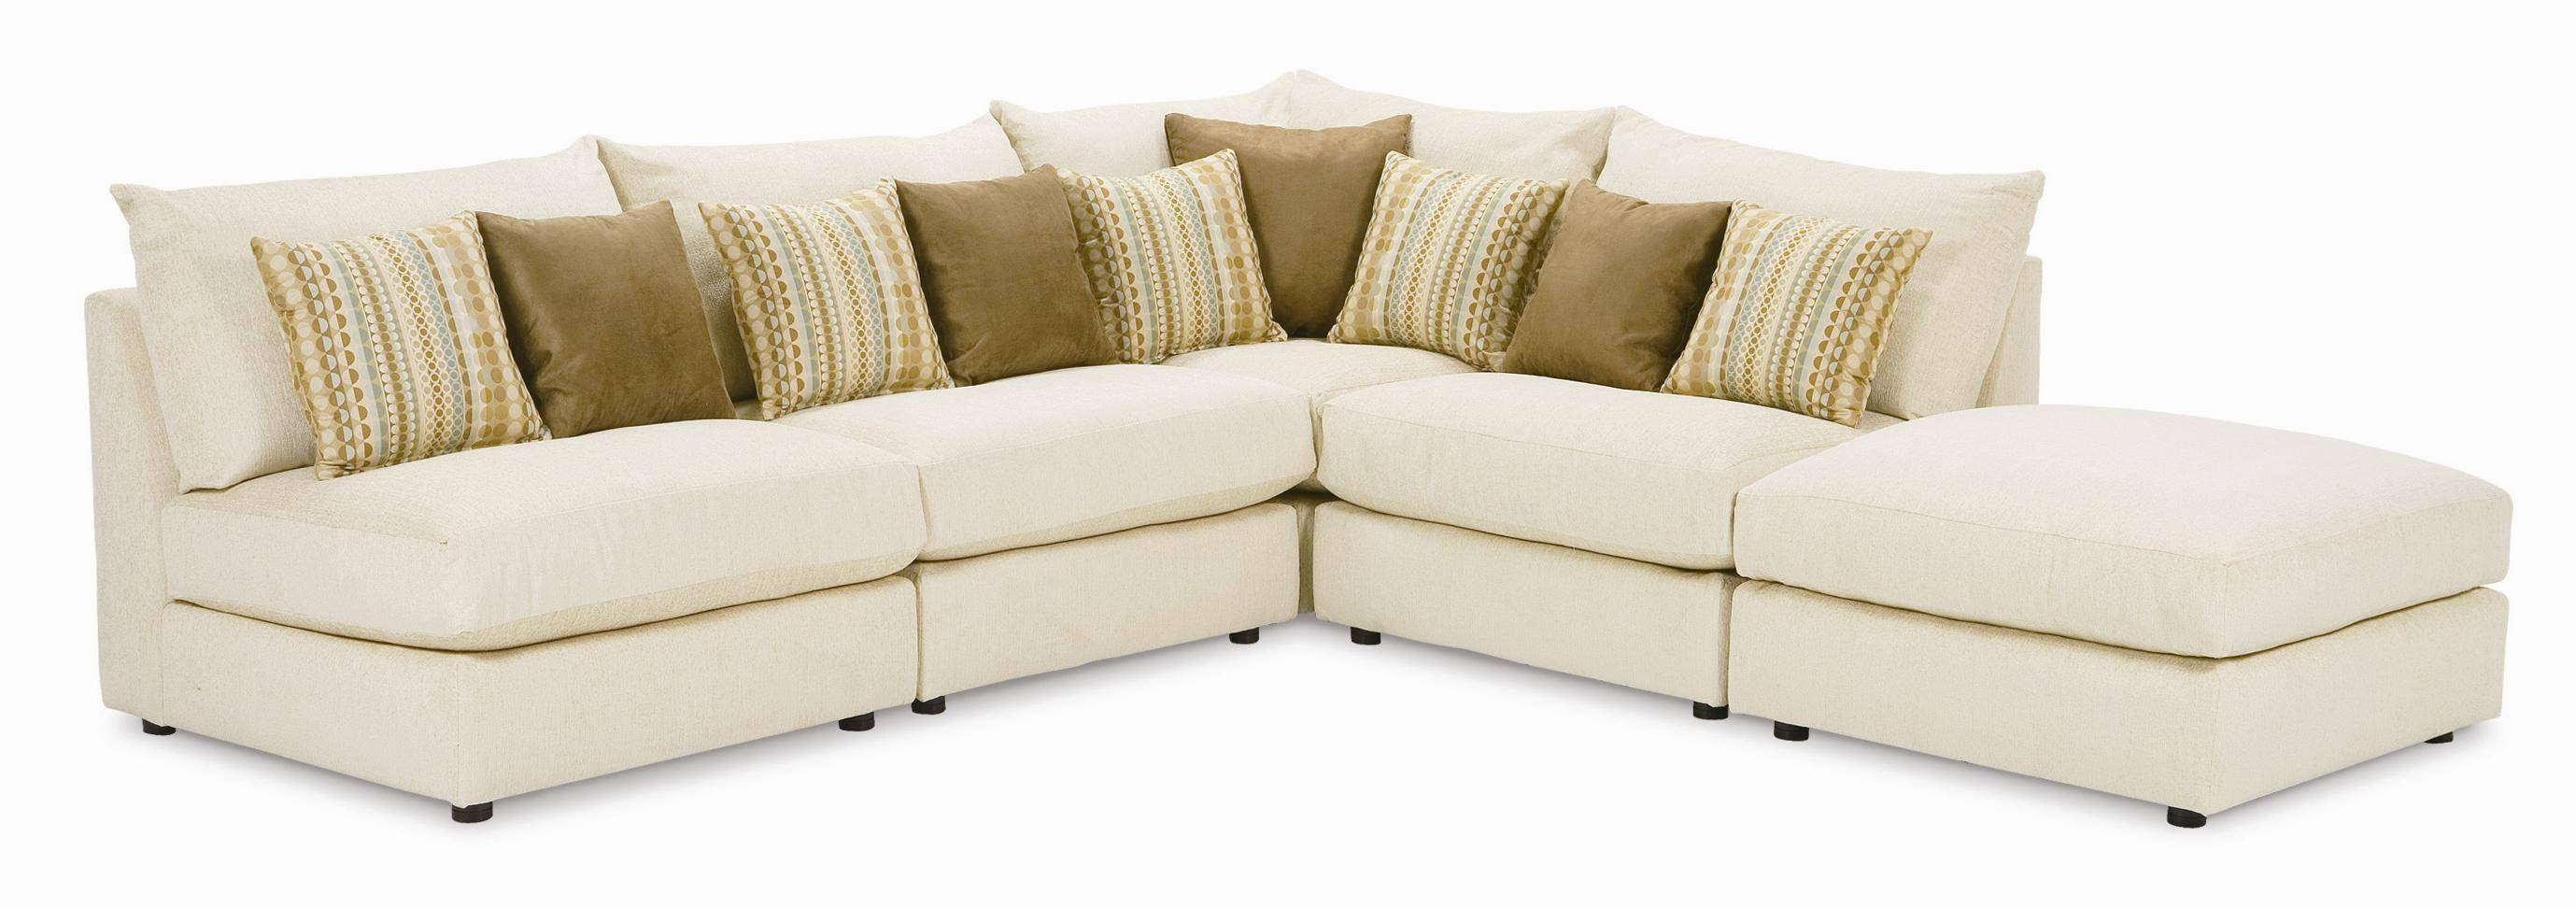 Rowe Tempo Five Piece Armless Sectional Sofa - Ahfa - Sofa with regard to Individual Piece Sectional Sofas (Image 16 of 25)